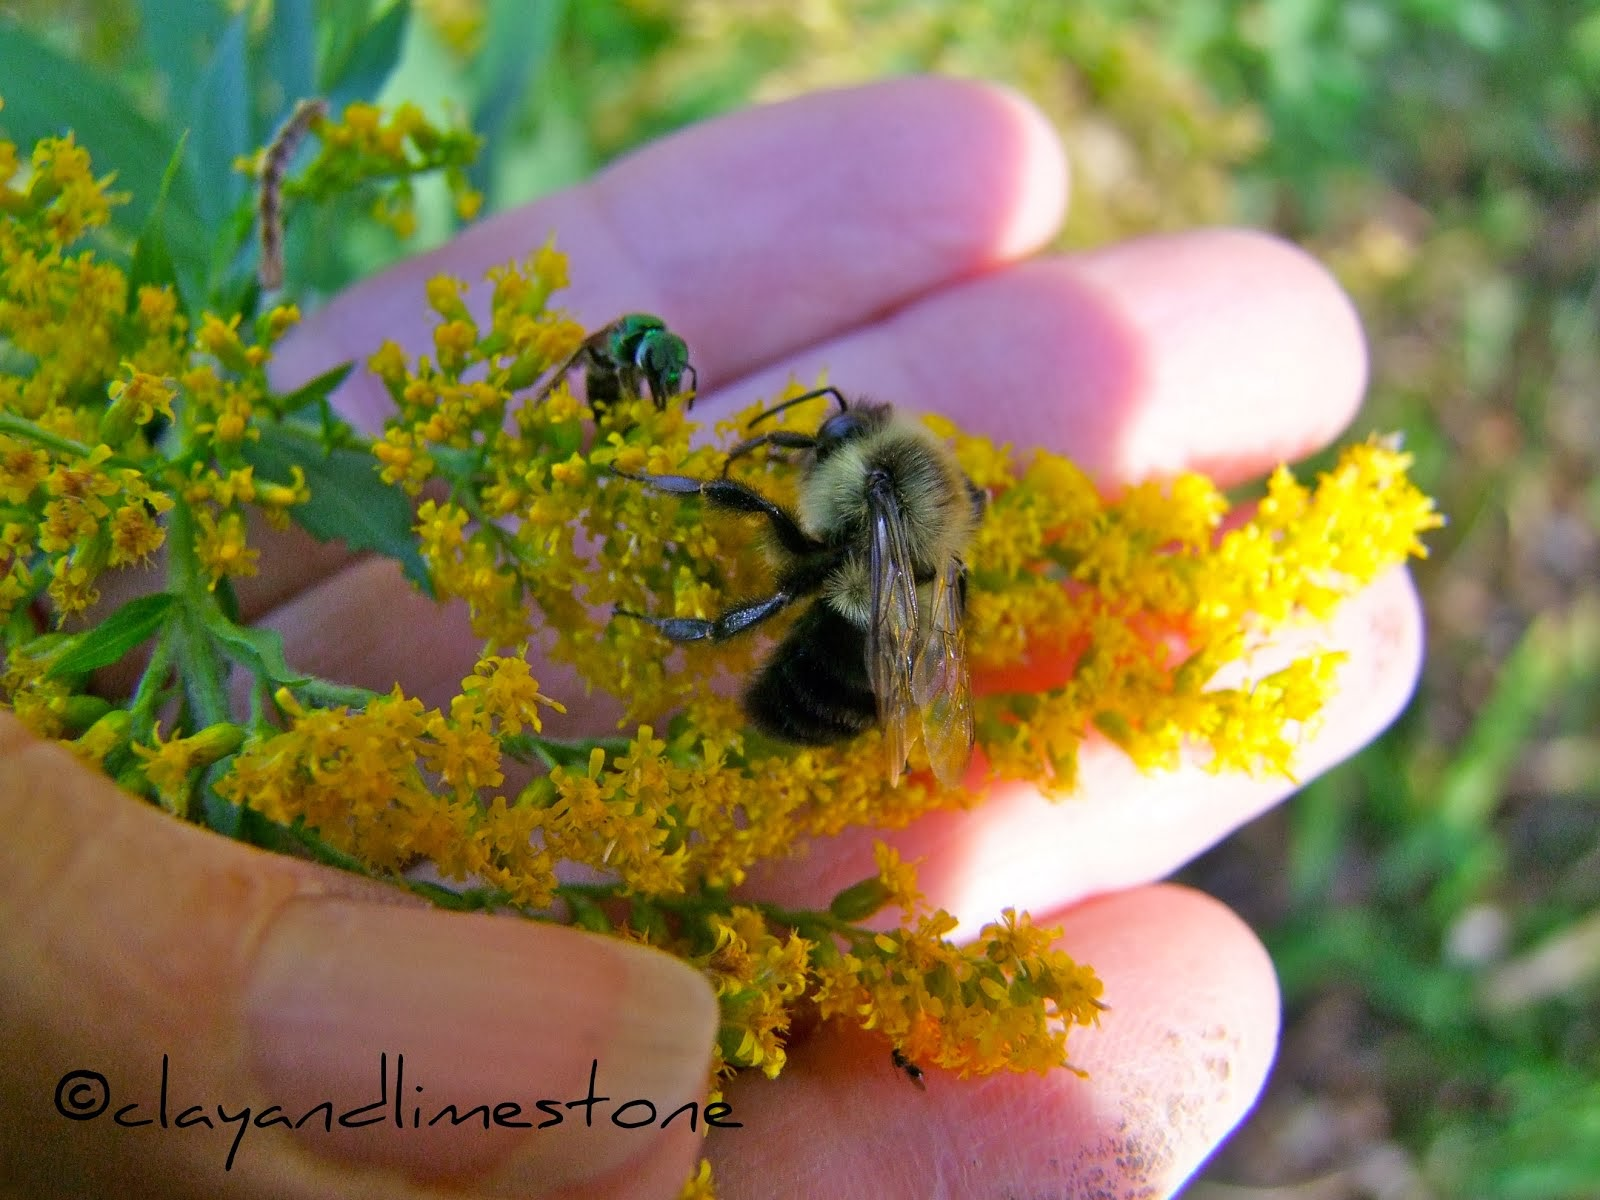 WANT TO HELP POLLINATORS?